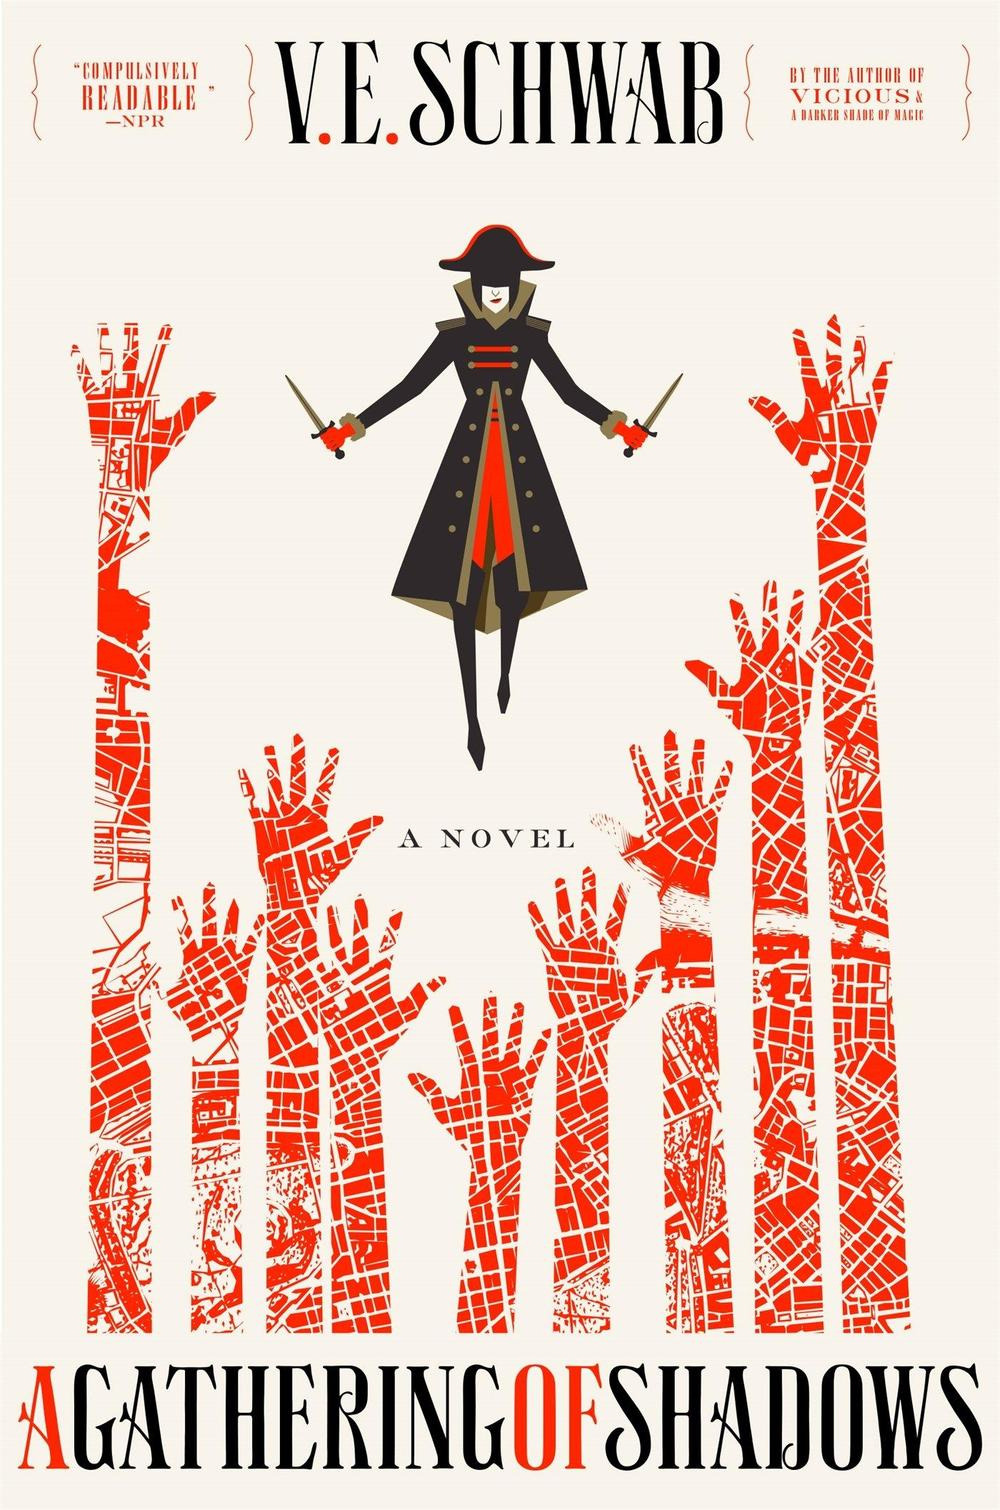 A Gathering of Shadows, by V.E. Schwab